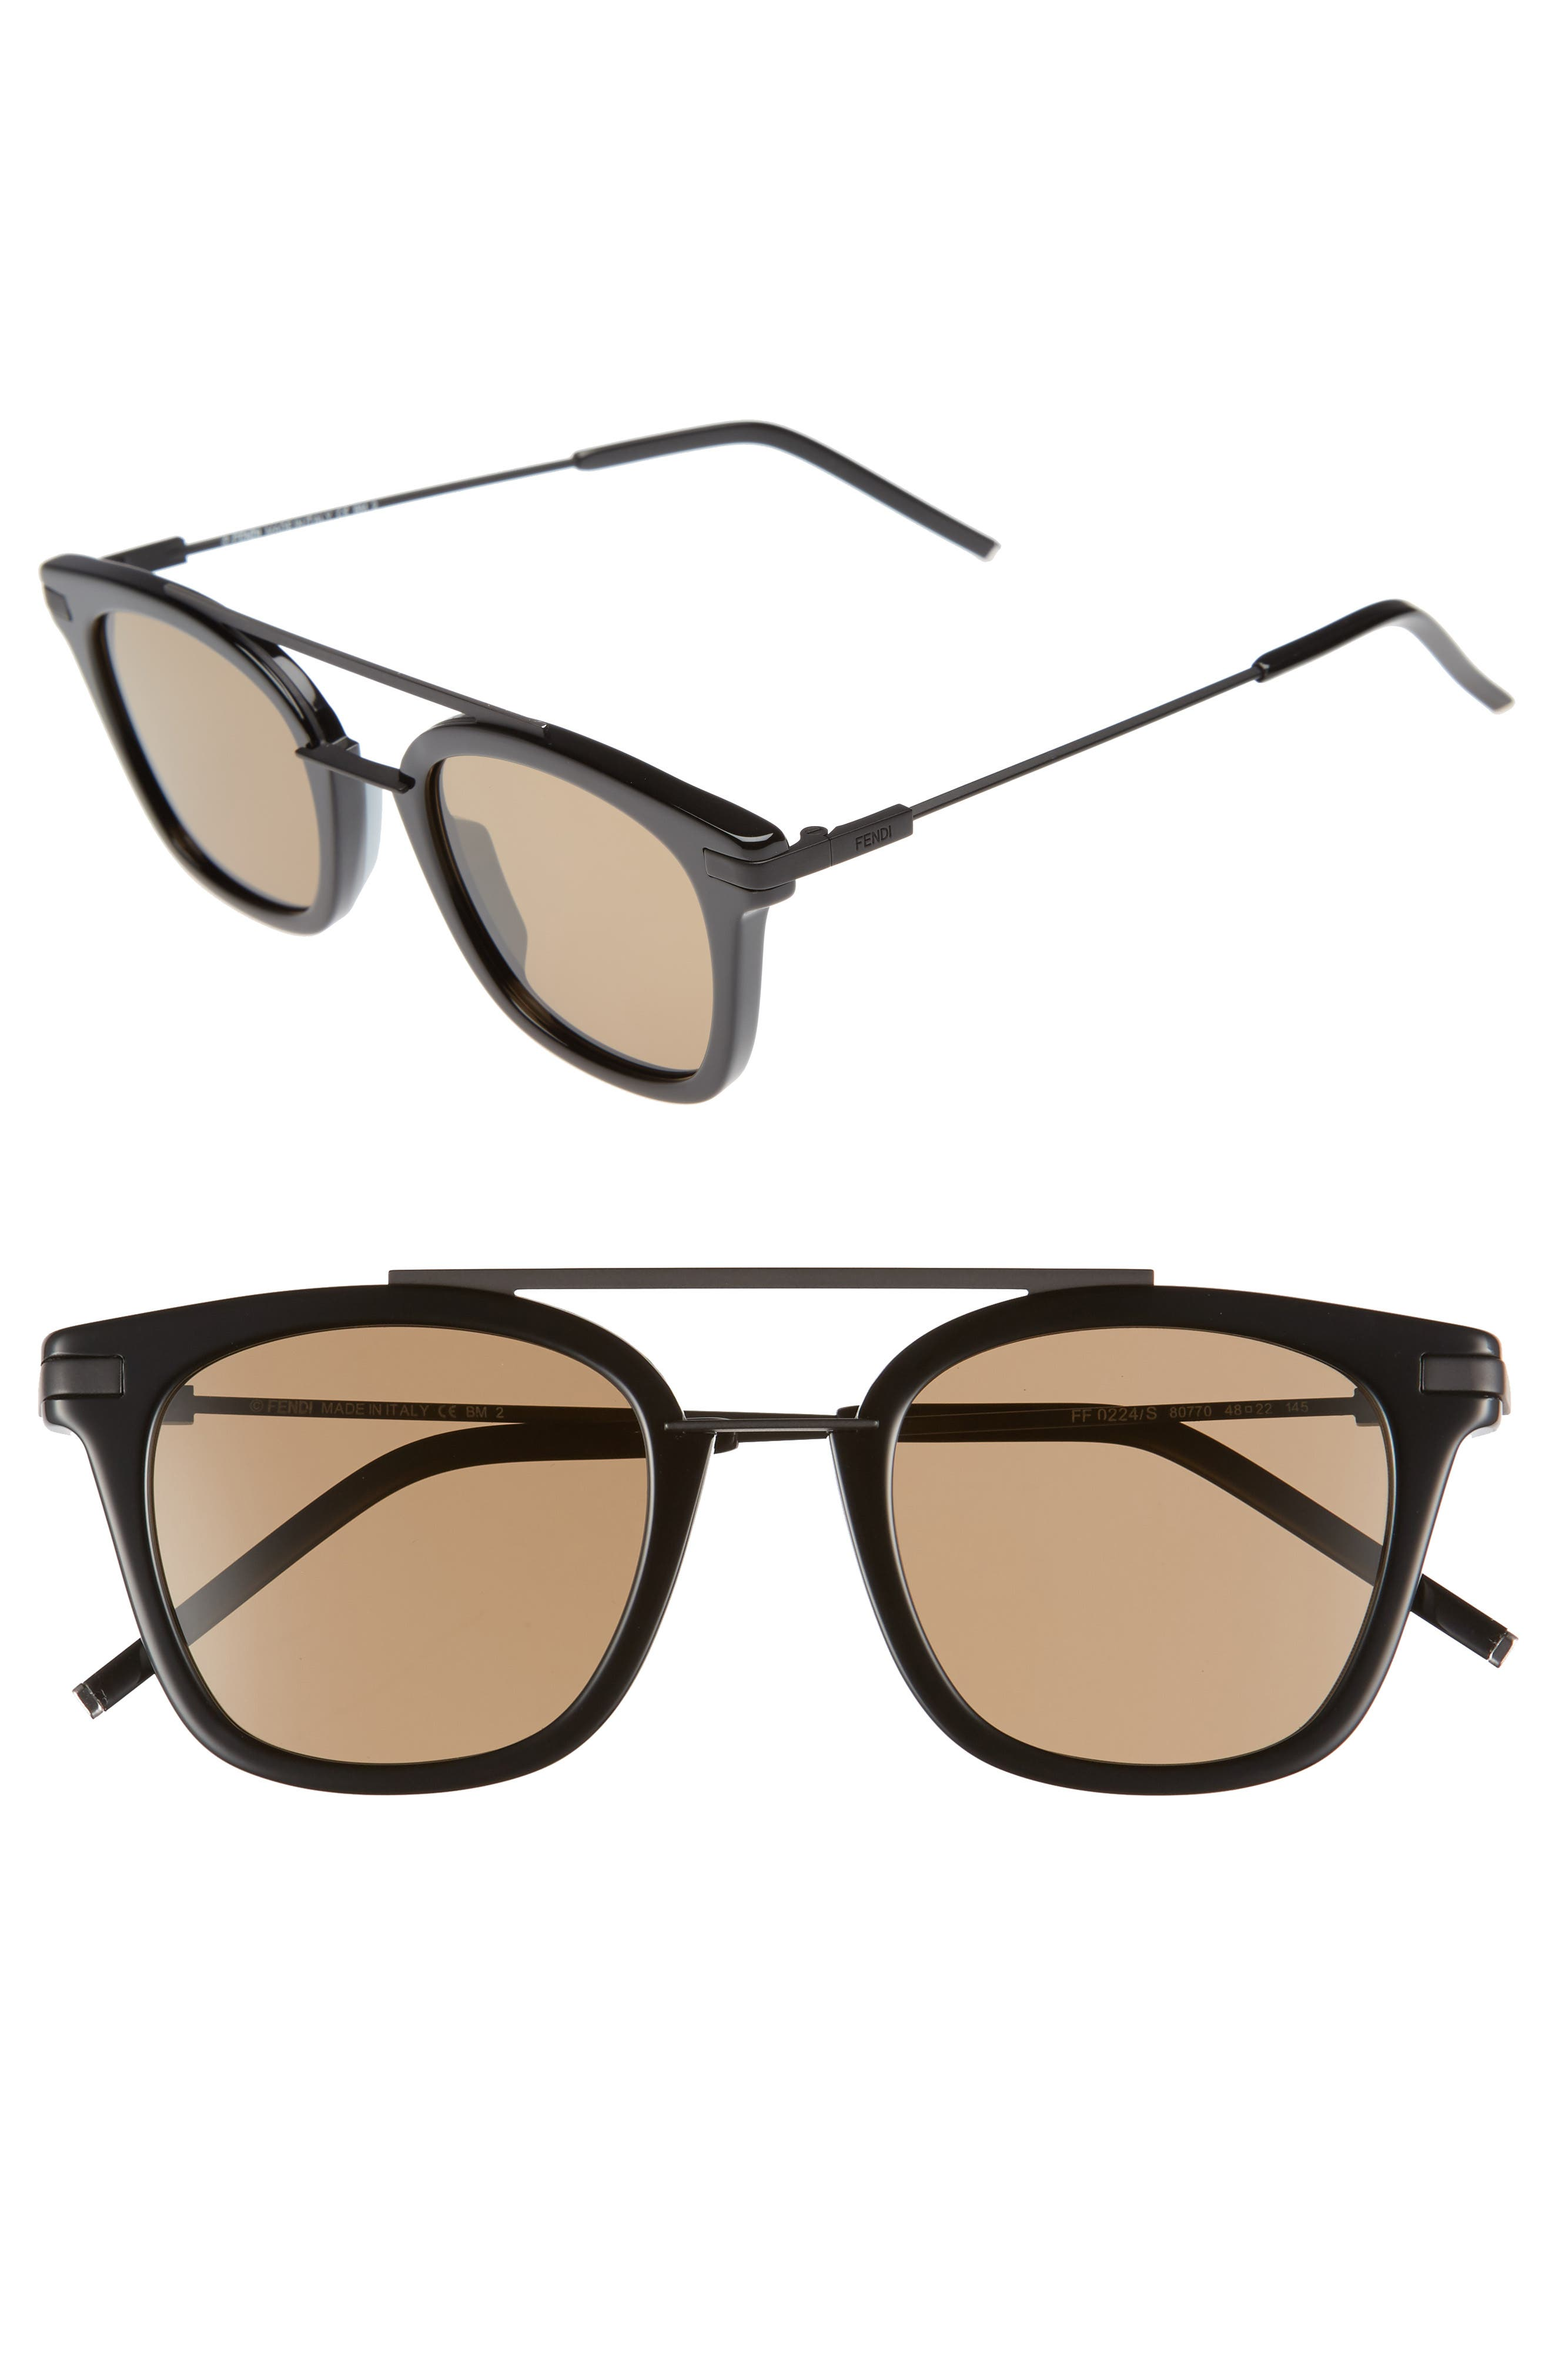 48mm Sunglasses,                         Main,                         color, BLACK